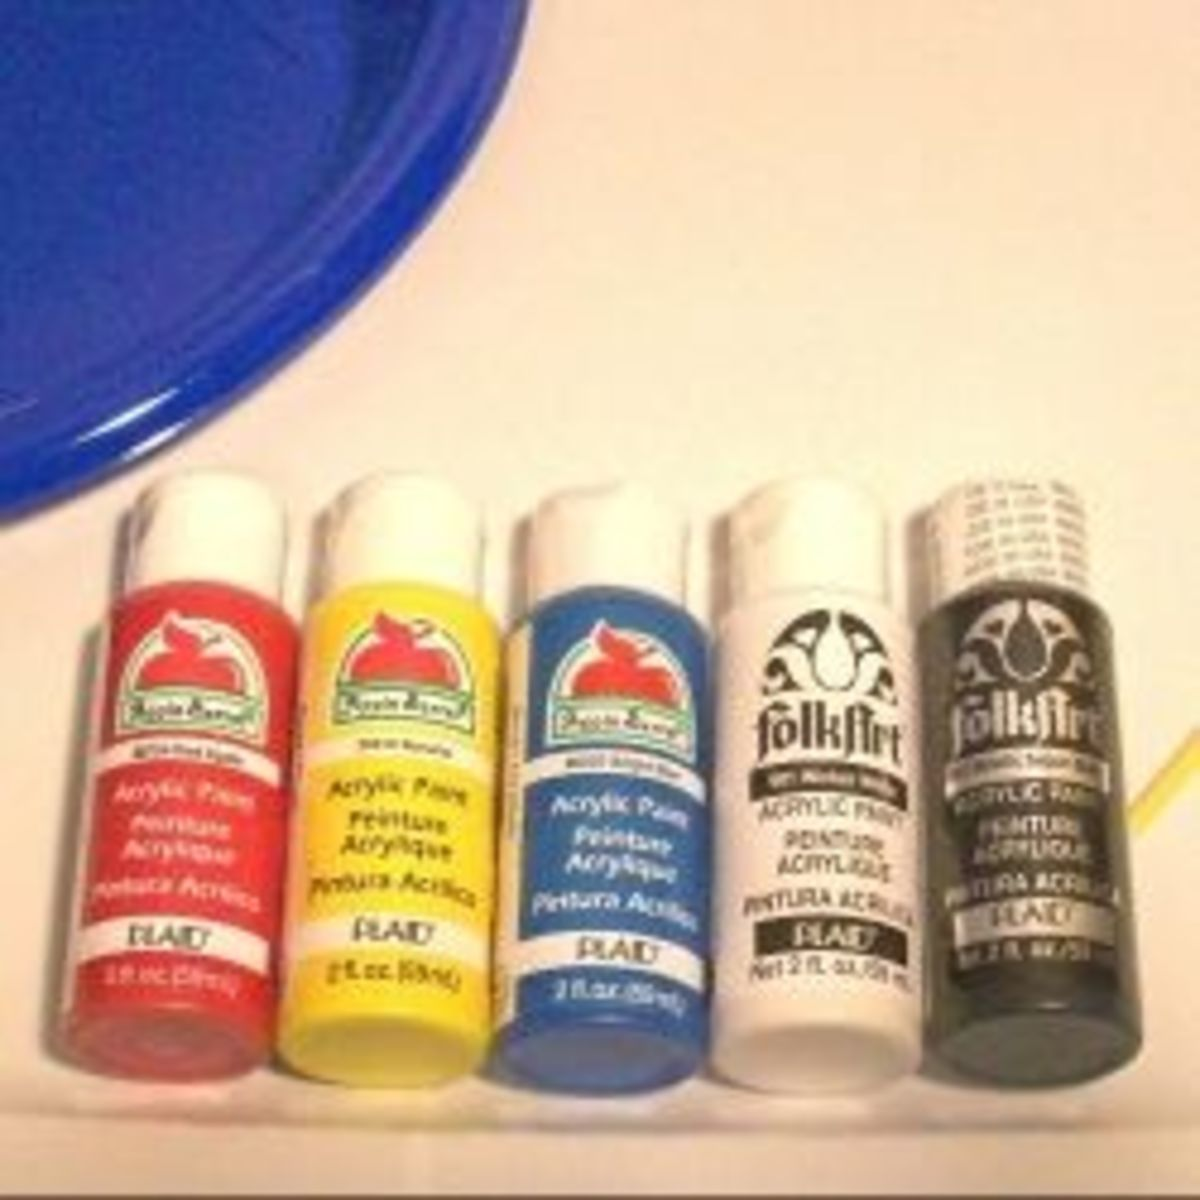 Acrylic Craft Paint and Infinate Possibilities for Decorating, Arts and Crafts